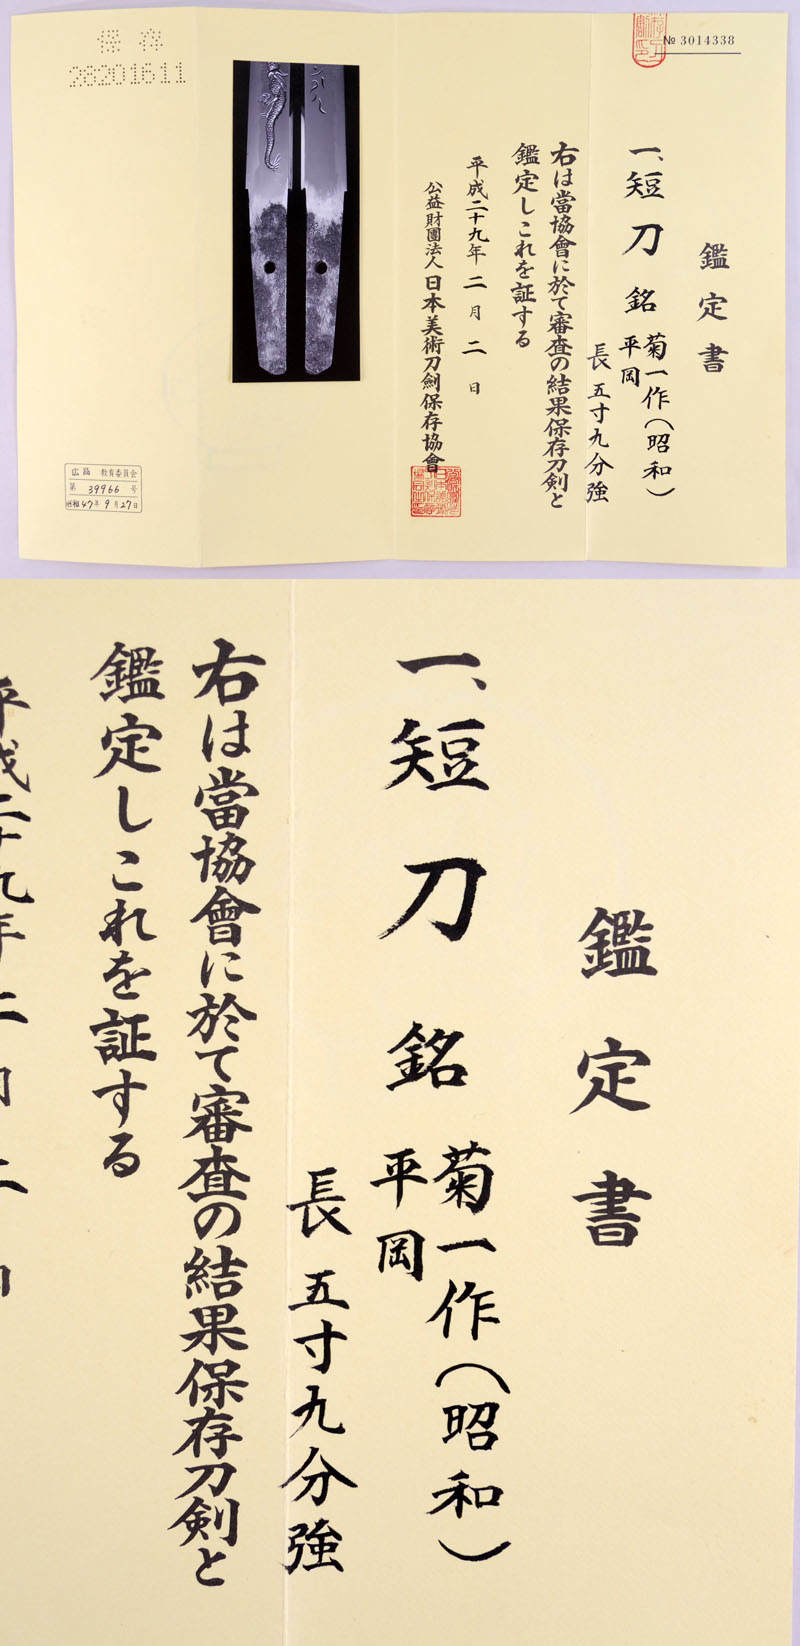 菊一作(昭和) Picture of Certificate